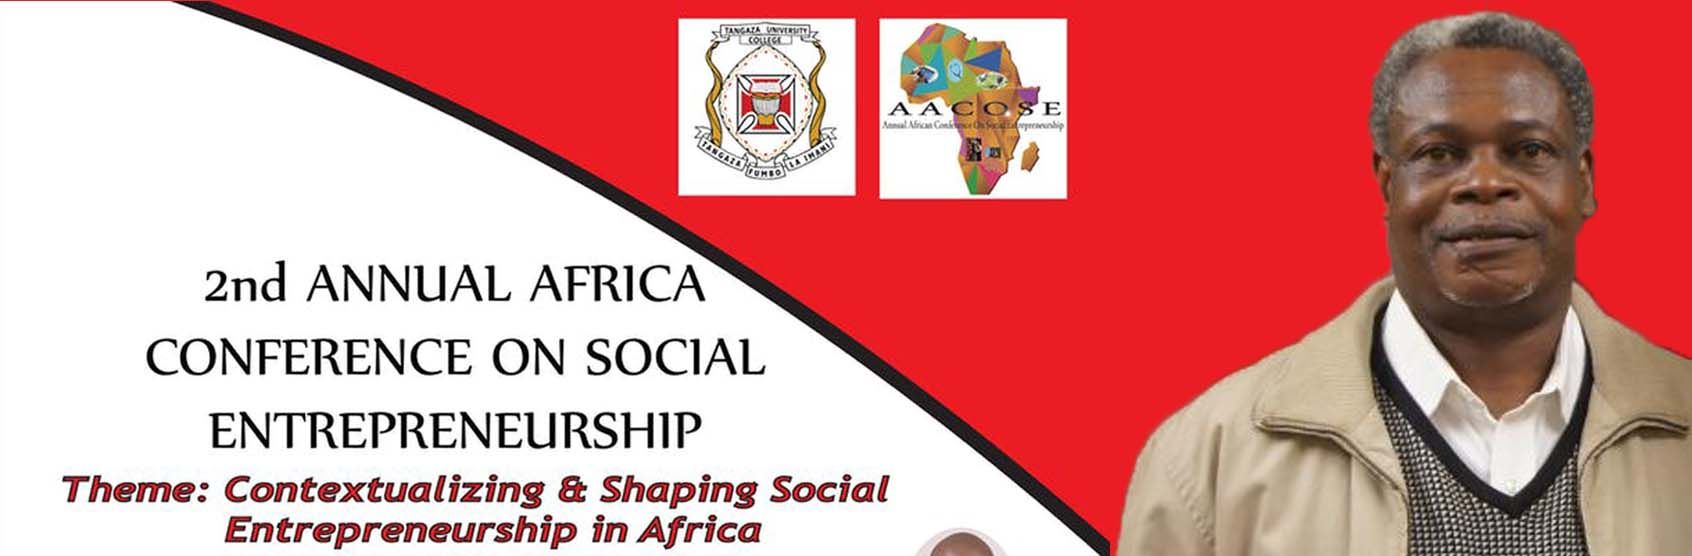 2018 Annual Africa Conference On Social Entrepreneurship